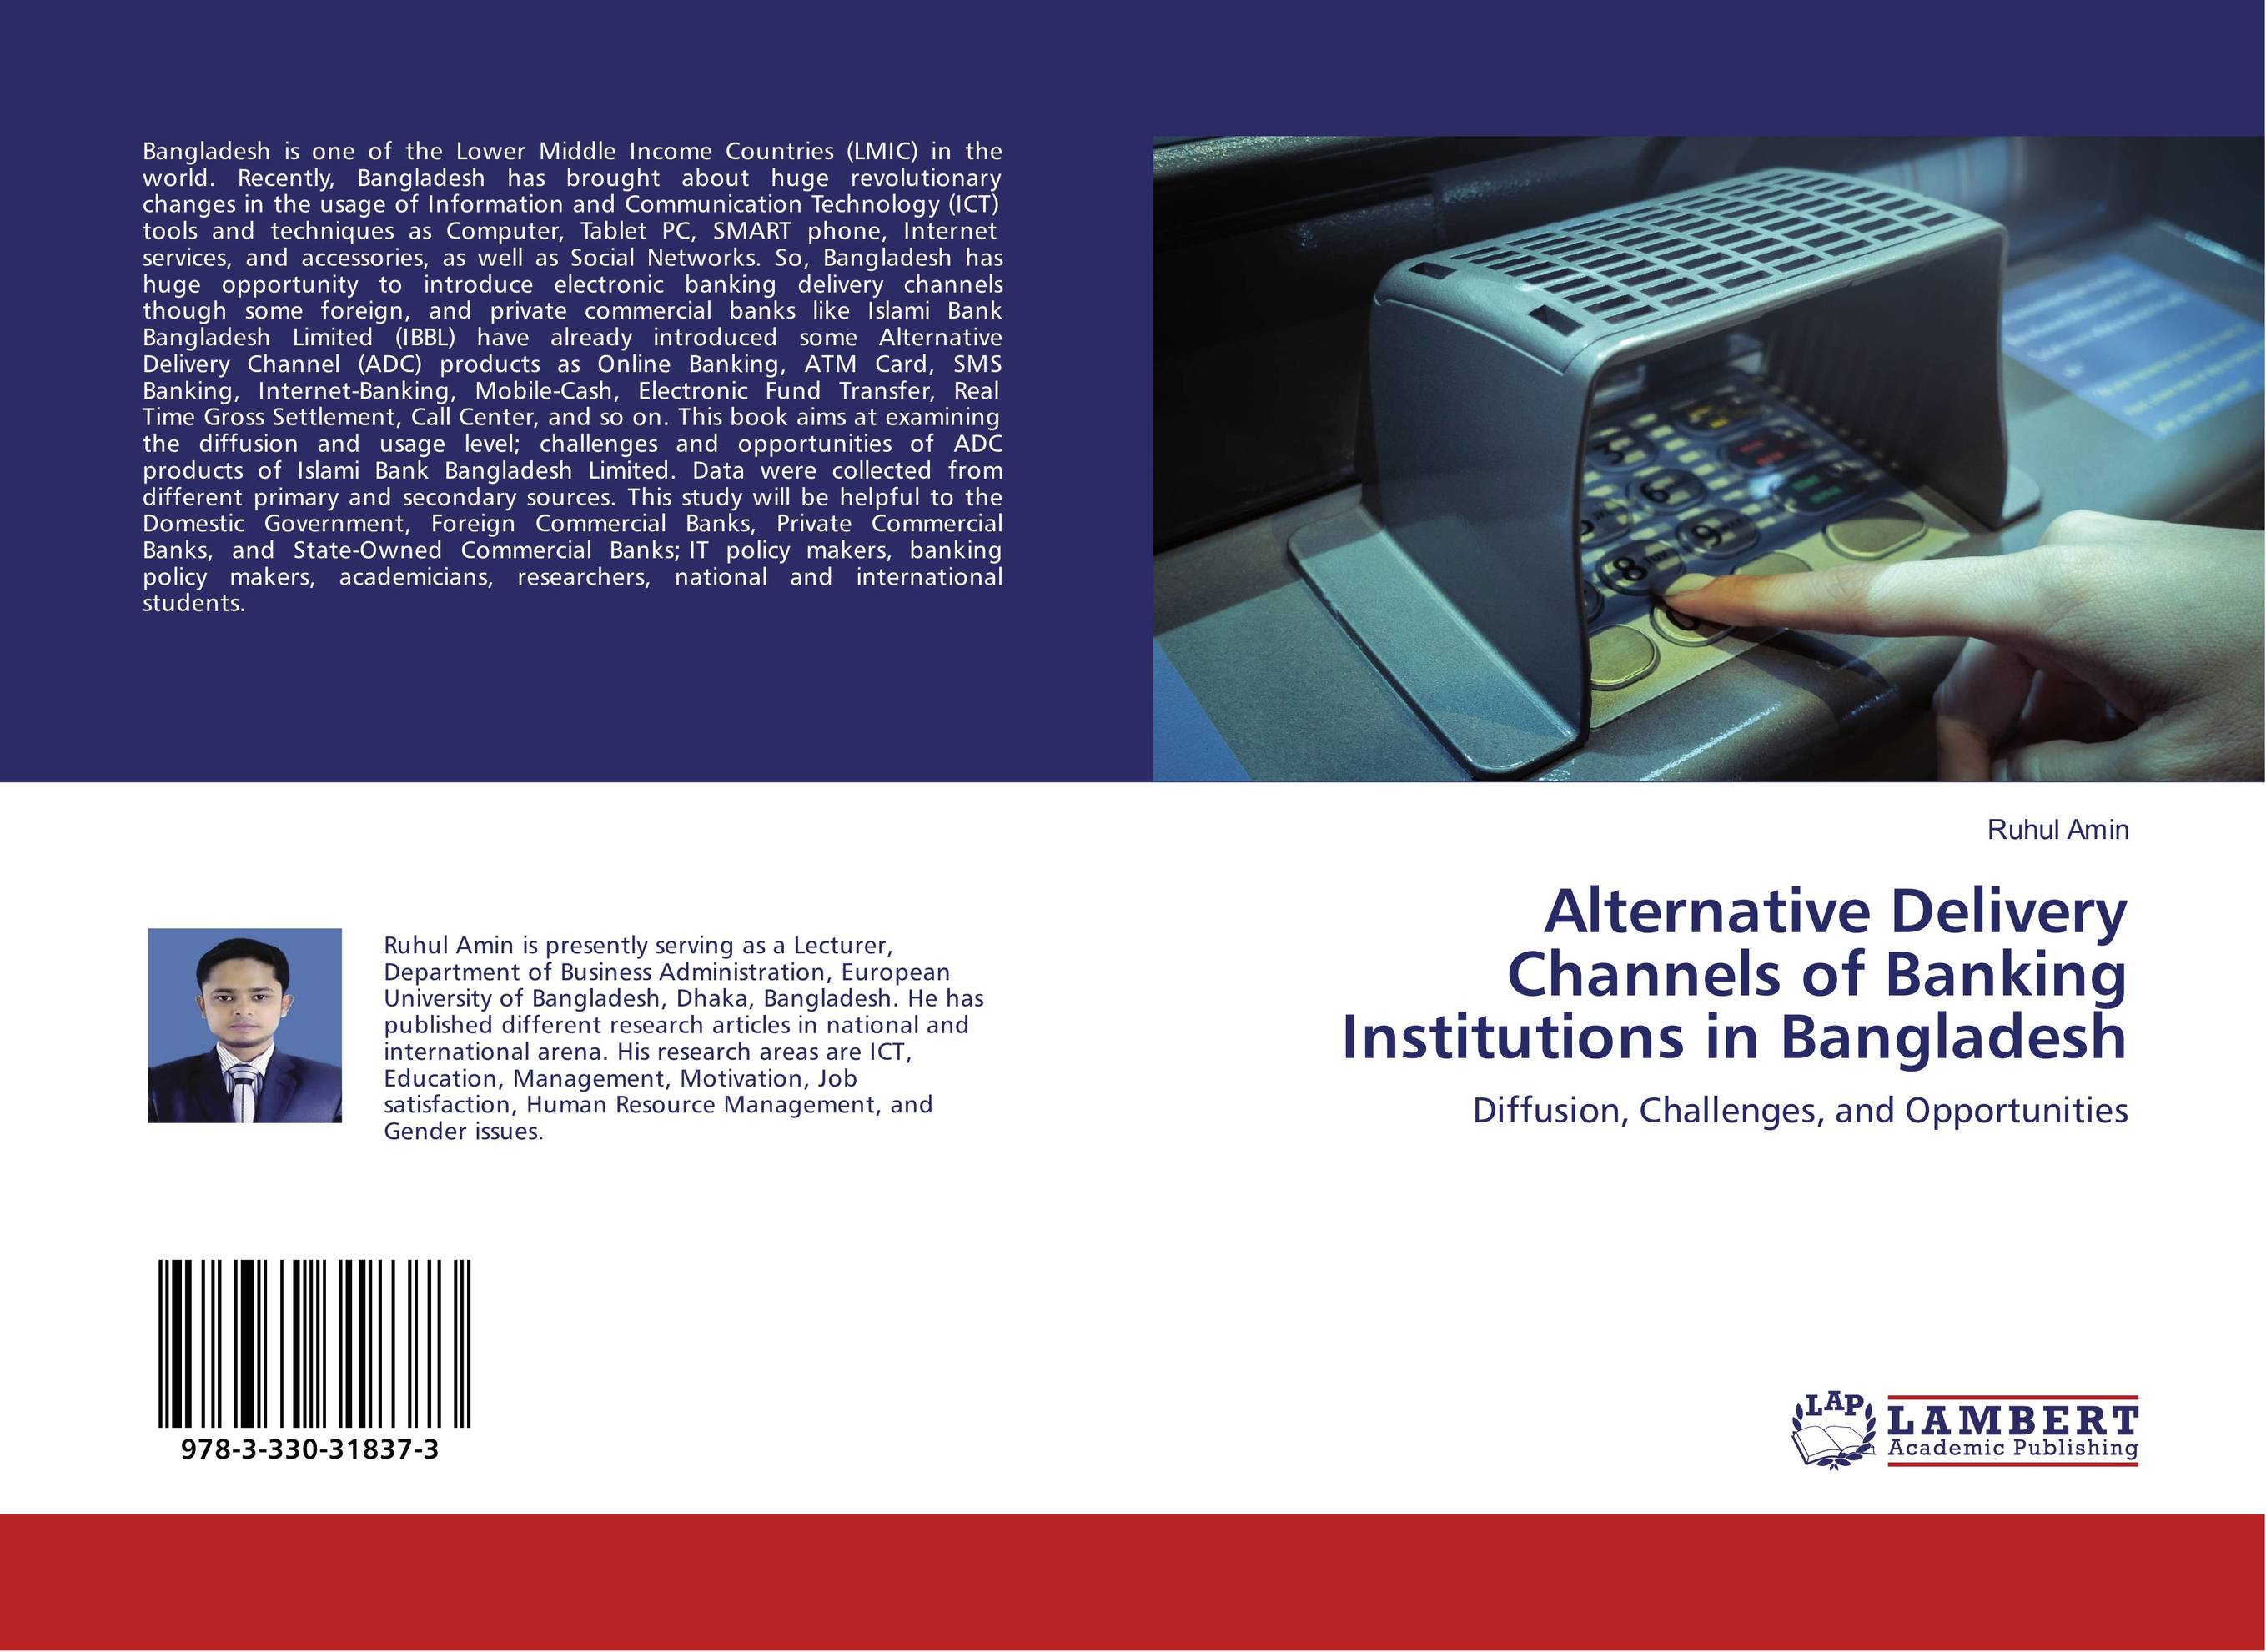 banking industry in bangladesh its contribution Download all the latest market reports you need on the banking industry in bangladesh click here to instantly access all the reports, in one place.